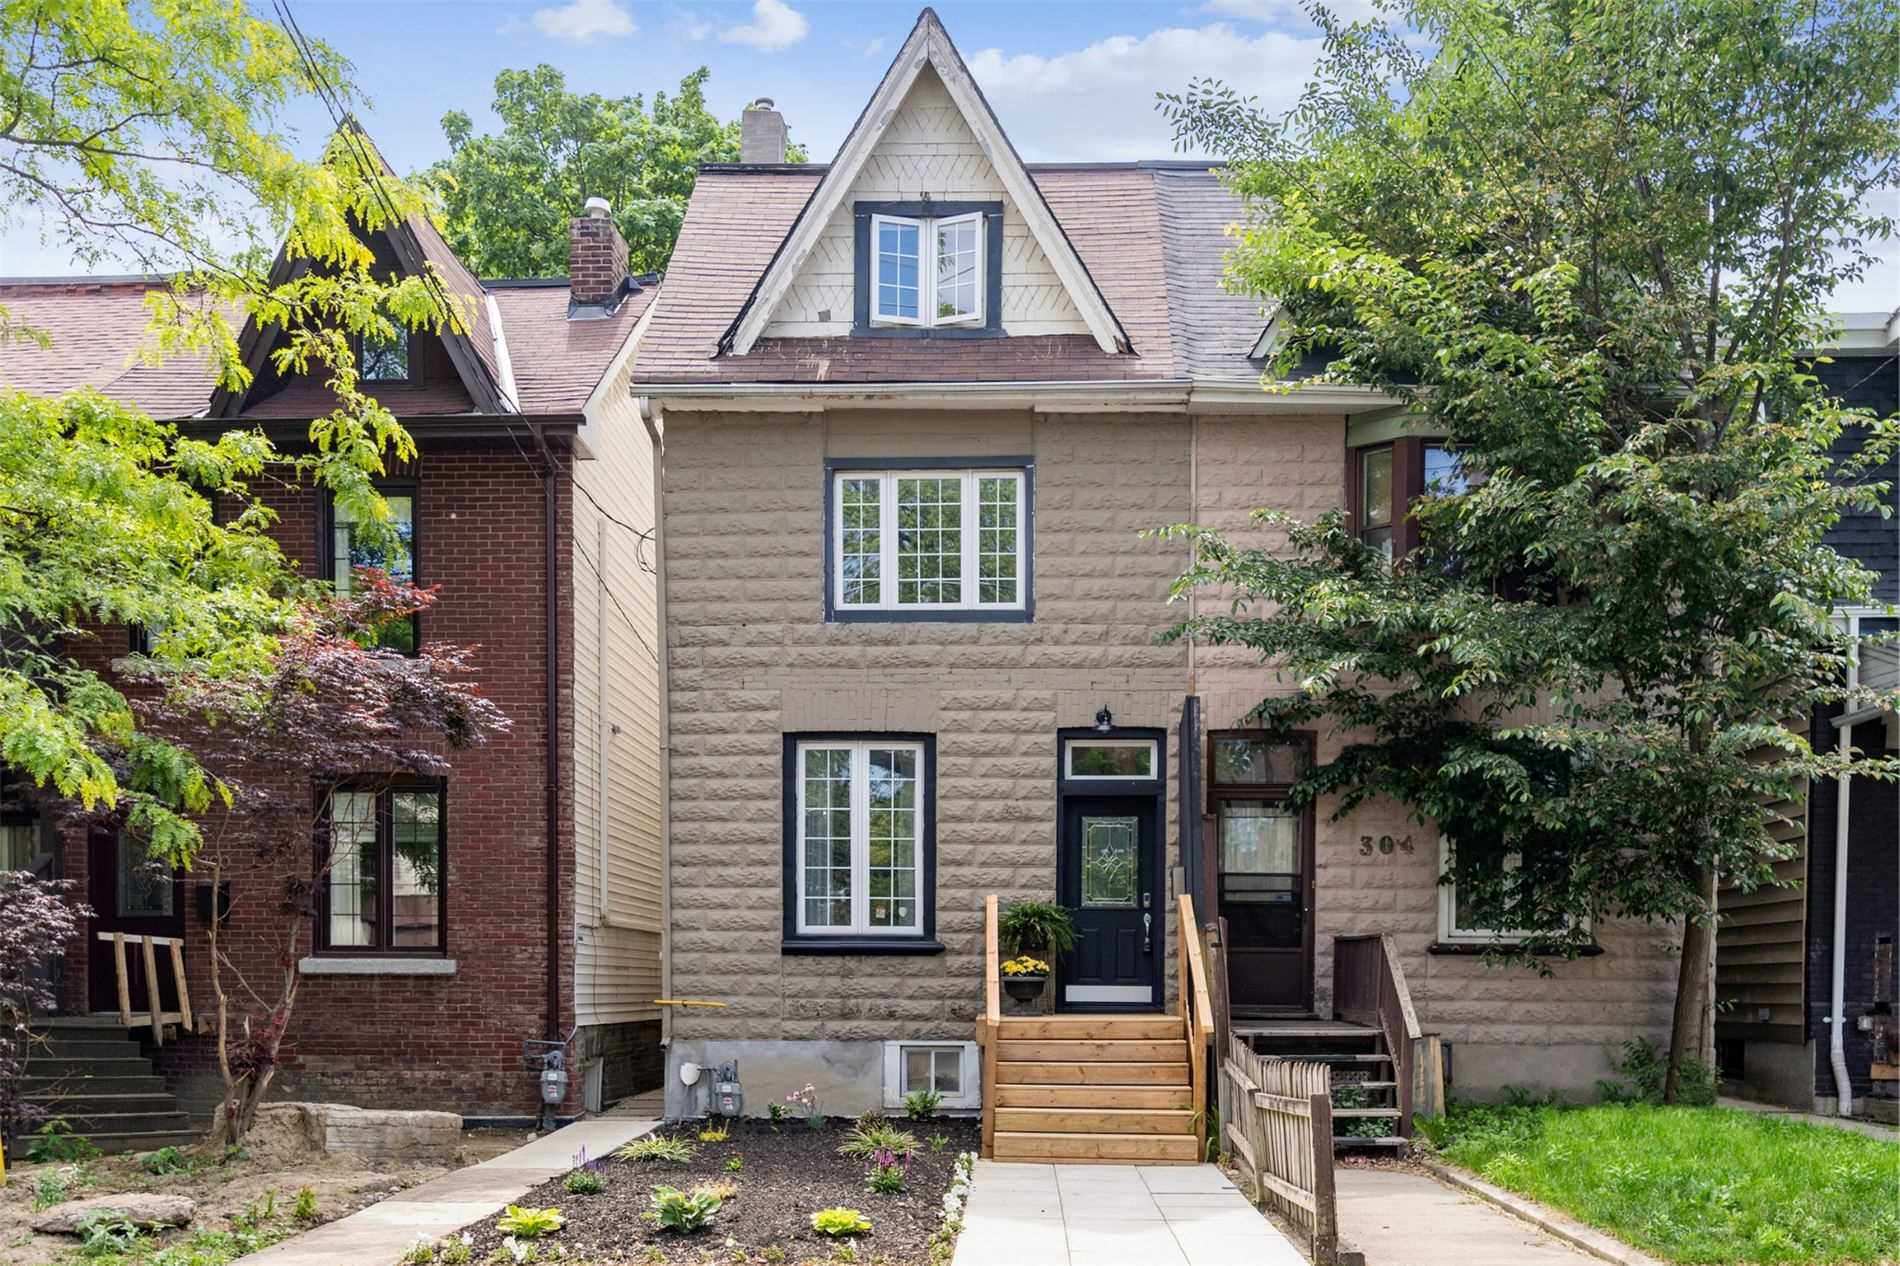 House For Sale 302 Pape Ave, M4M2W7, South Riverdale, Toronto